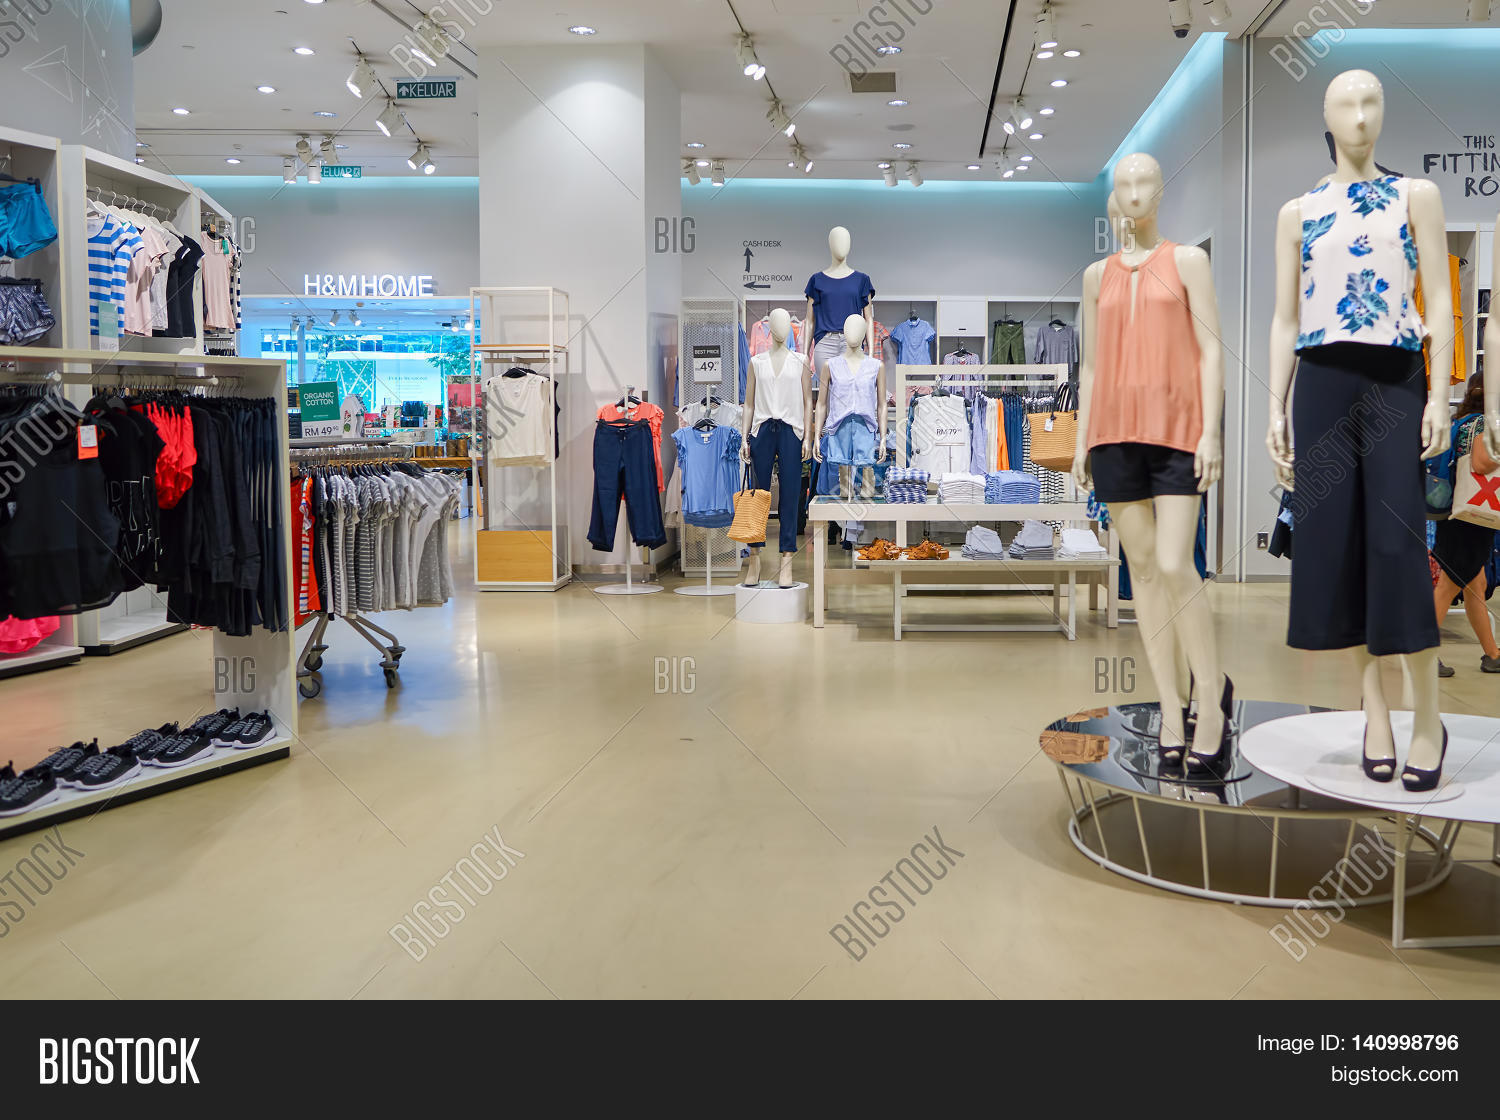 the value of hennes mauritz essay More essay examples on supply chain rubric at the end of the 2008 financial year the h&m group had 1,738 stores in 33 countries including 18 franchise stores, 13 cos stores, 17 monki stores.